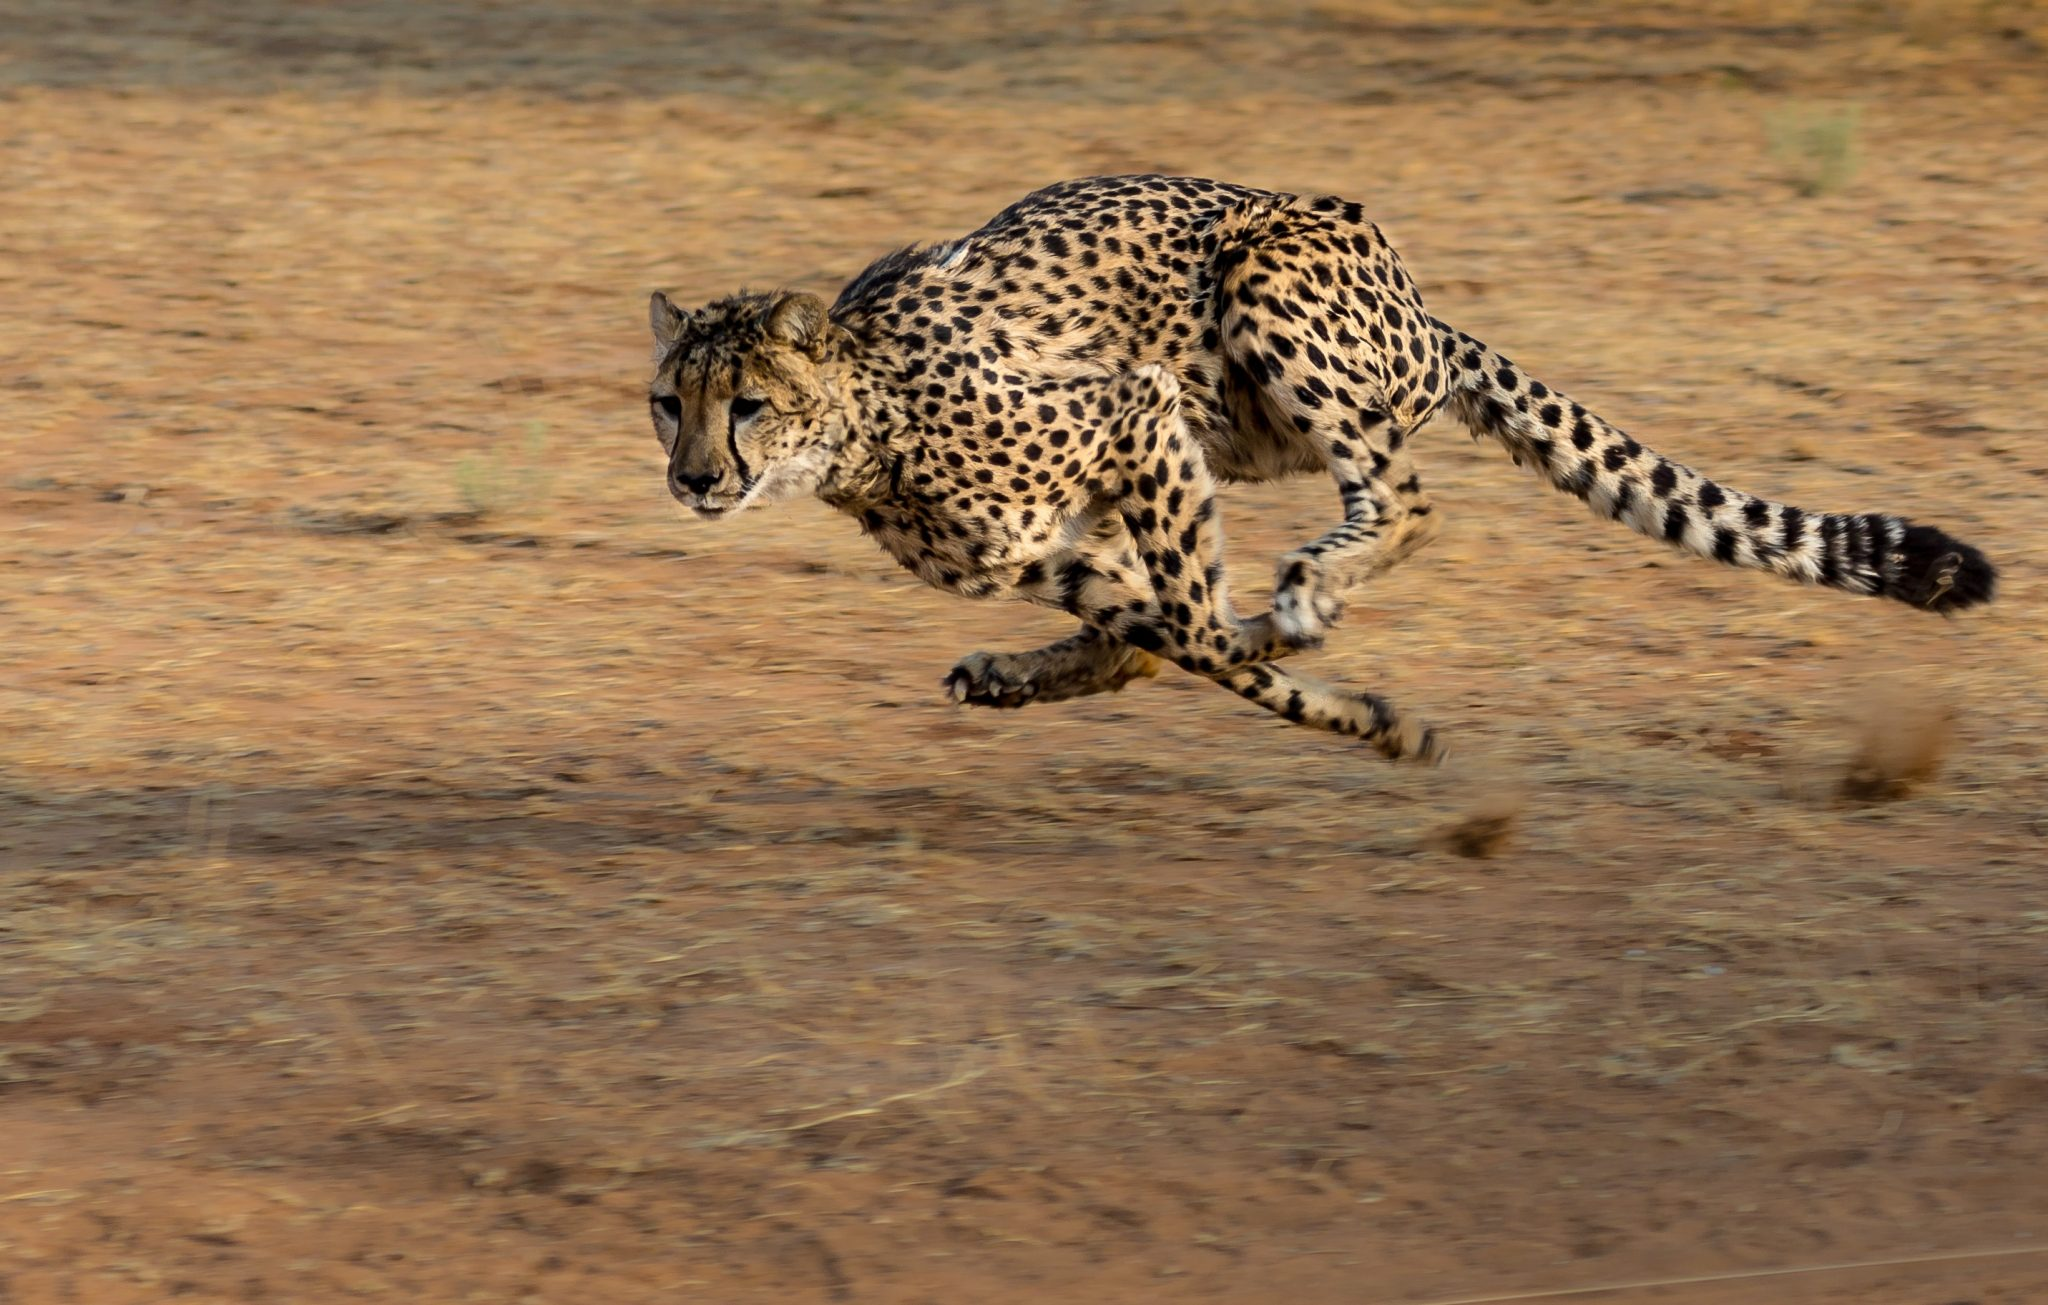 Sub Sahara Africa_Cheetah-africa-namibia-cat-run_PD